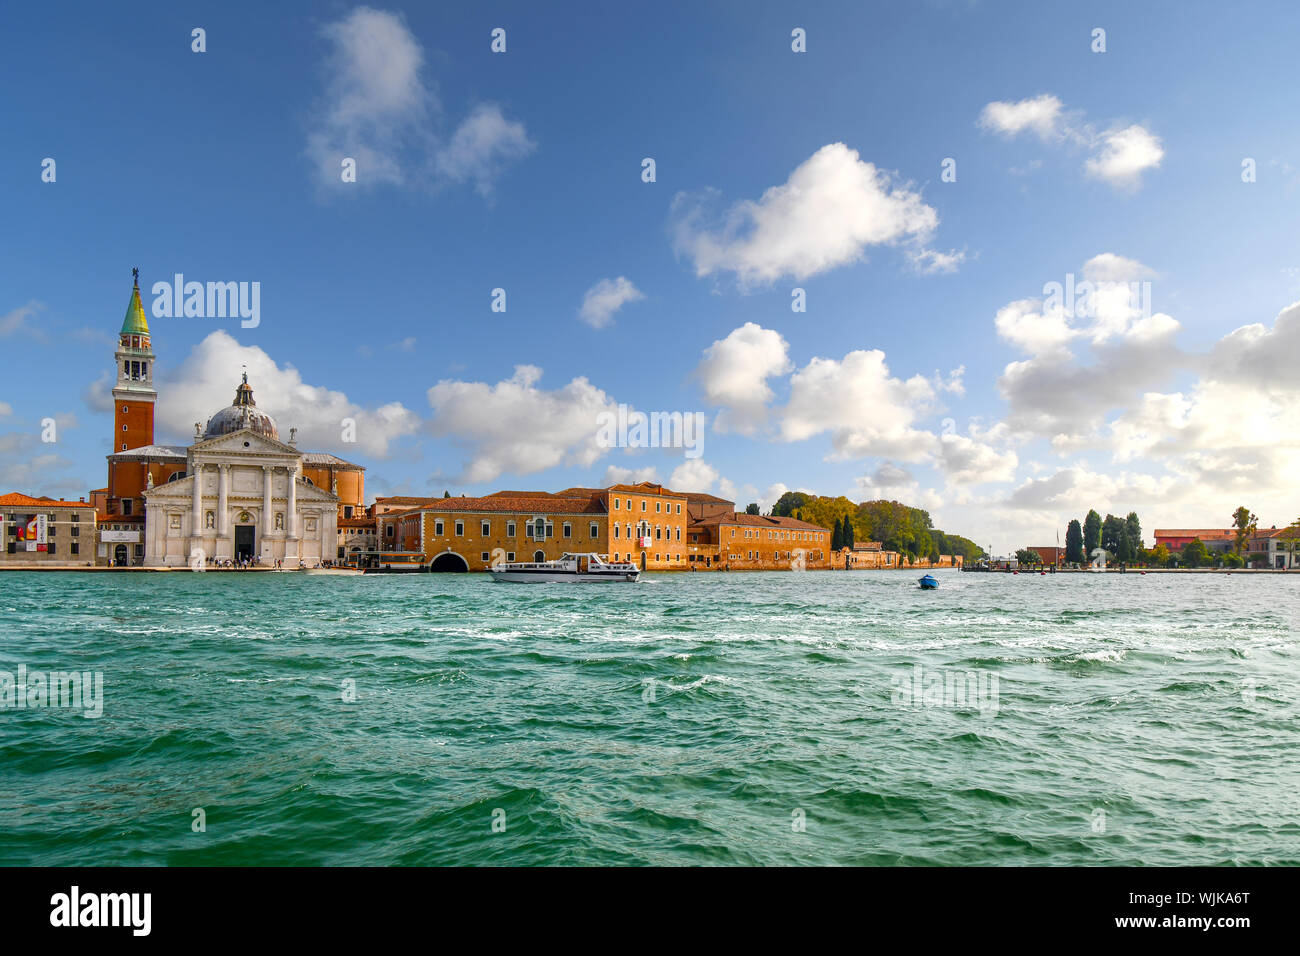 A small boat passes in front of San Giorgio Maggiore, the 16th century Church and tower on the island of San Giorgio Maggiore, in Venice, Italy. Stock Photo